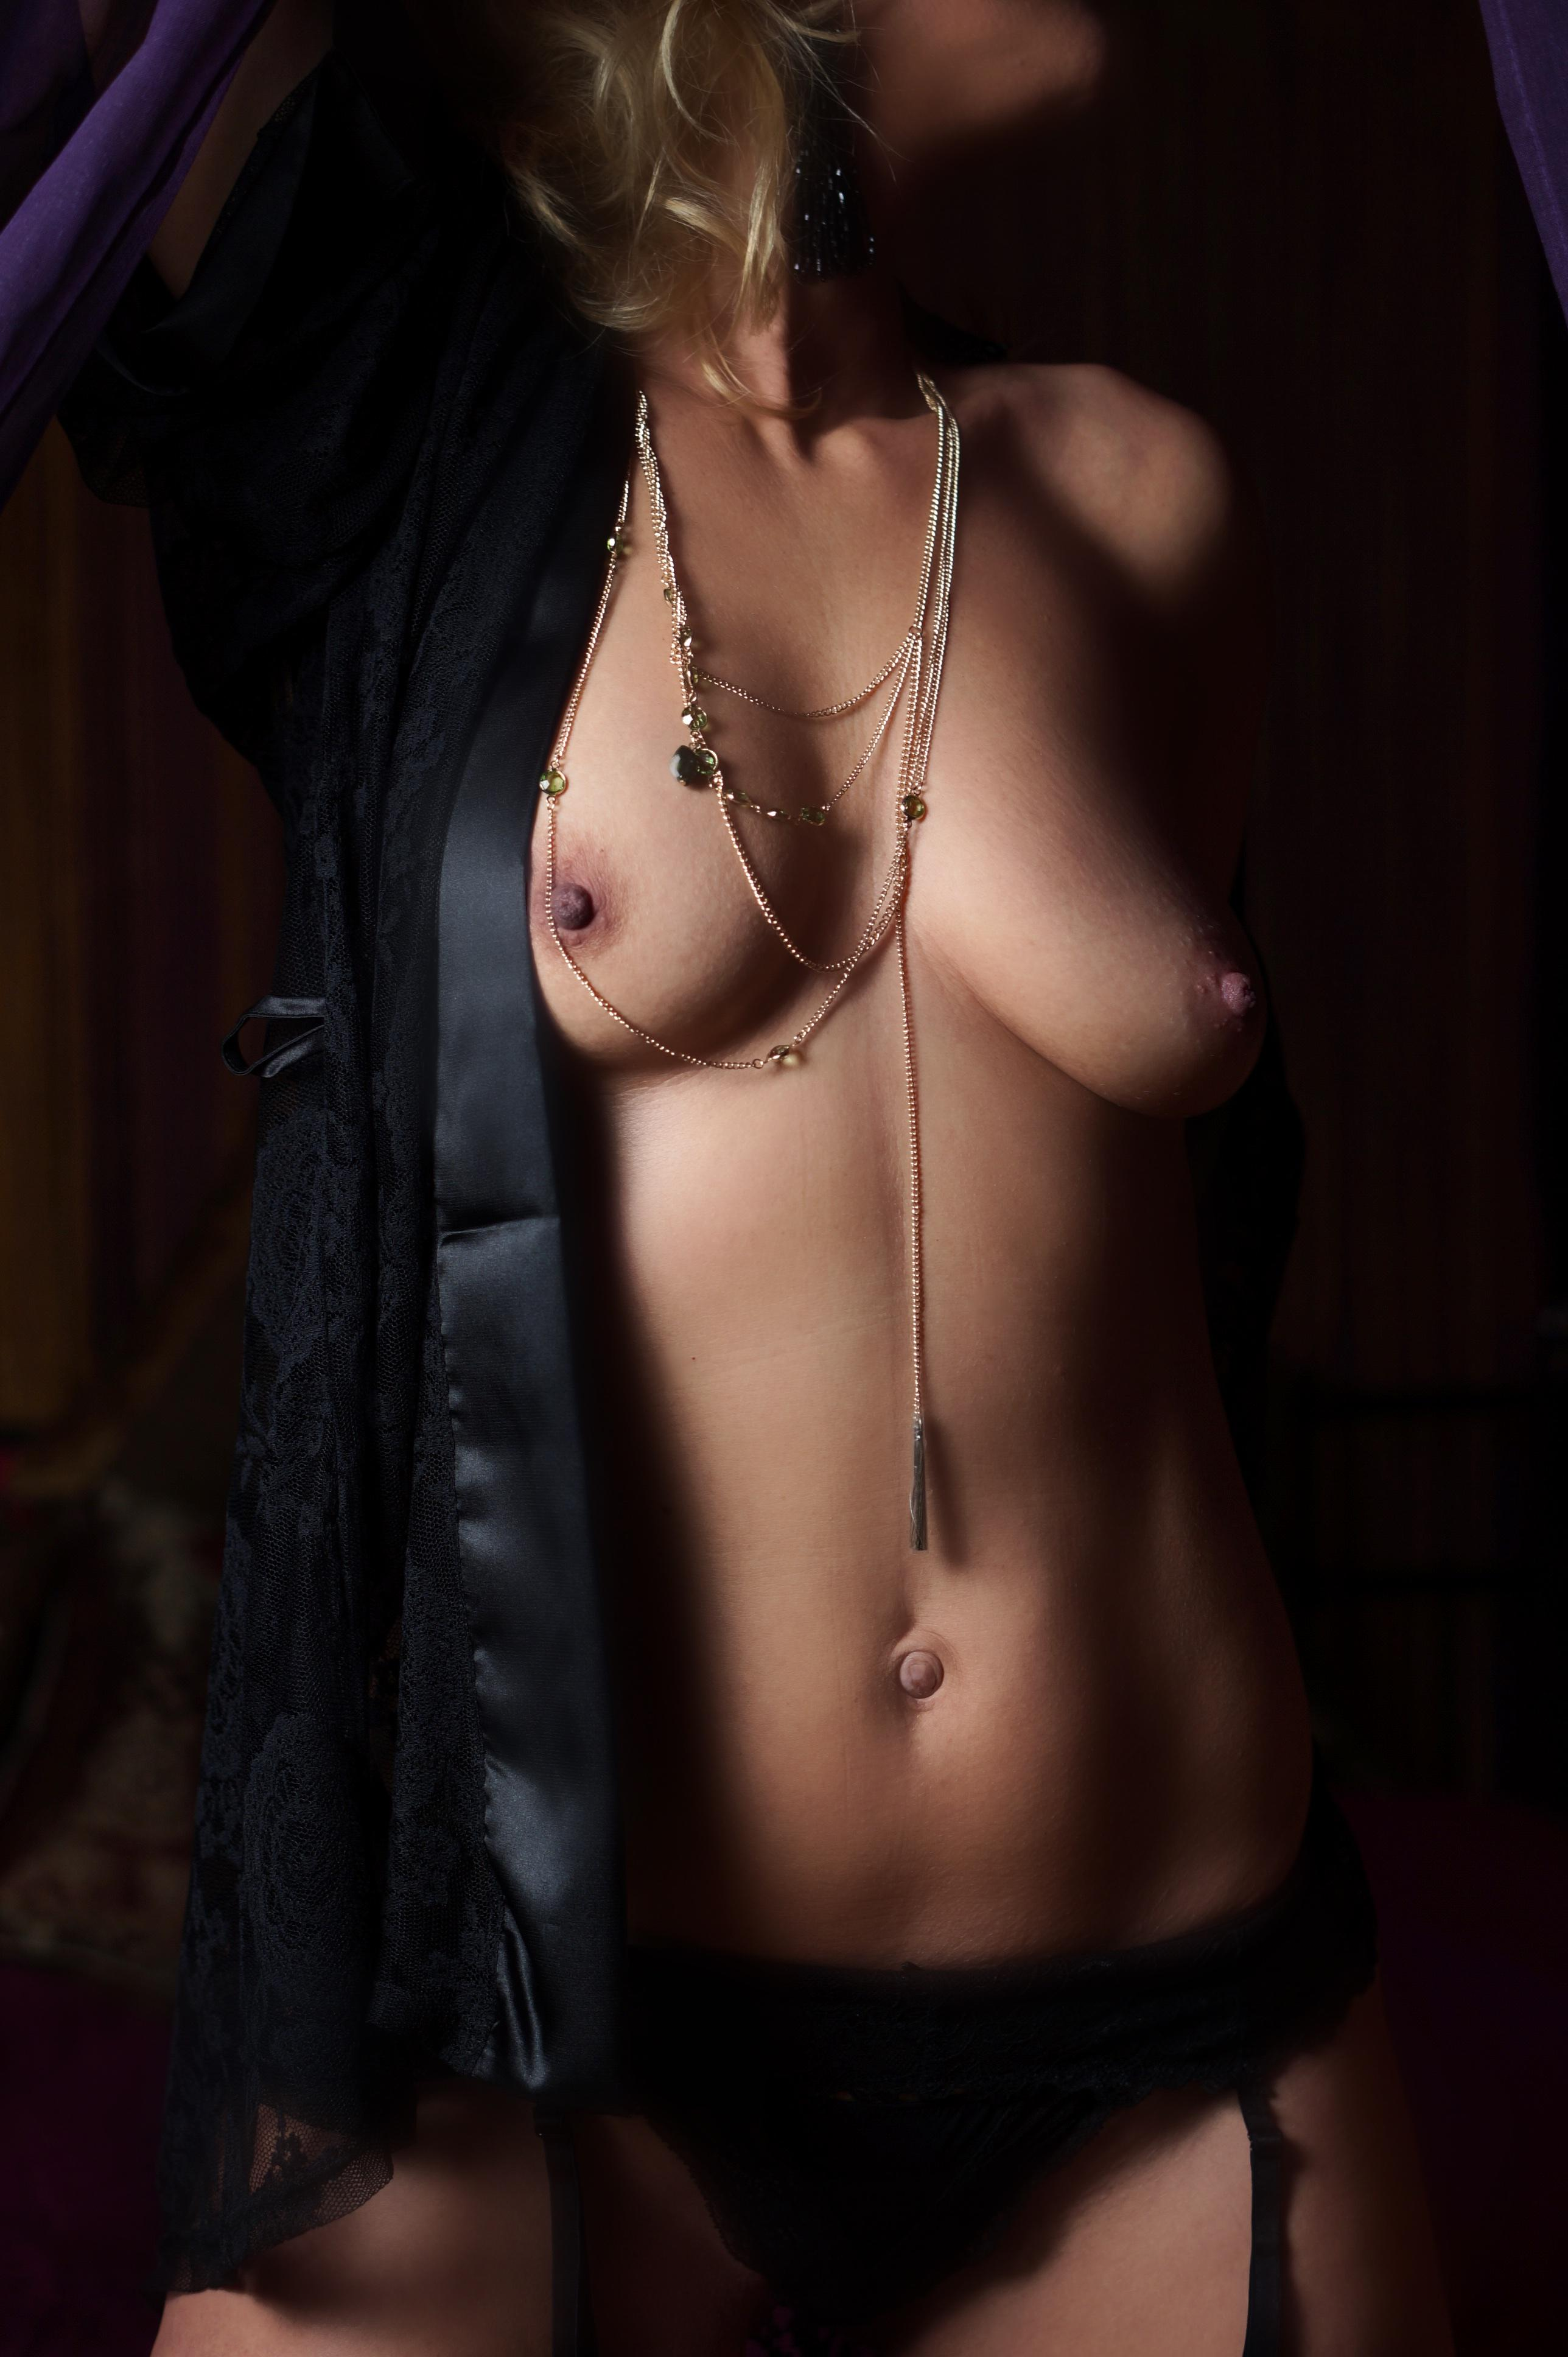 female escorts victoria amatuer